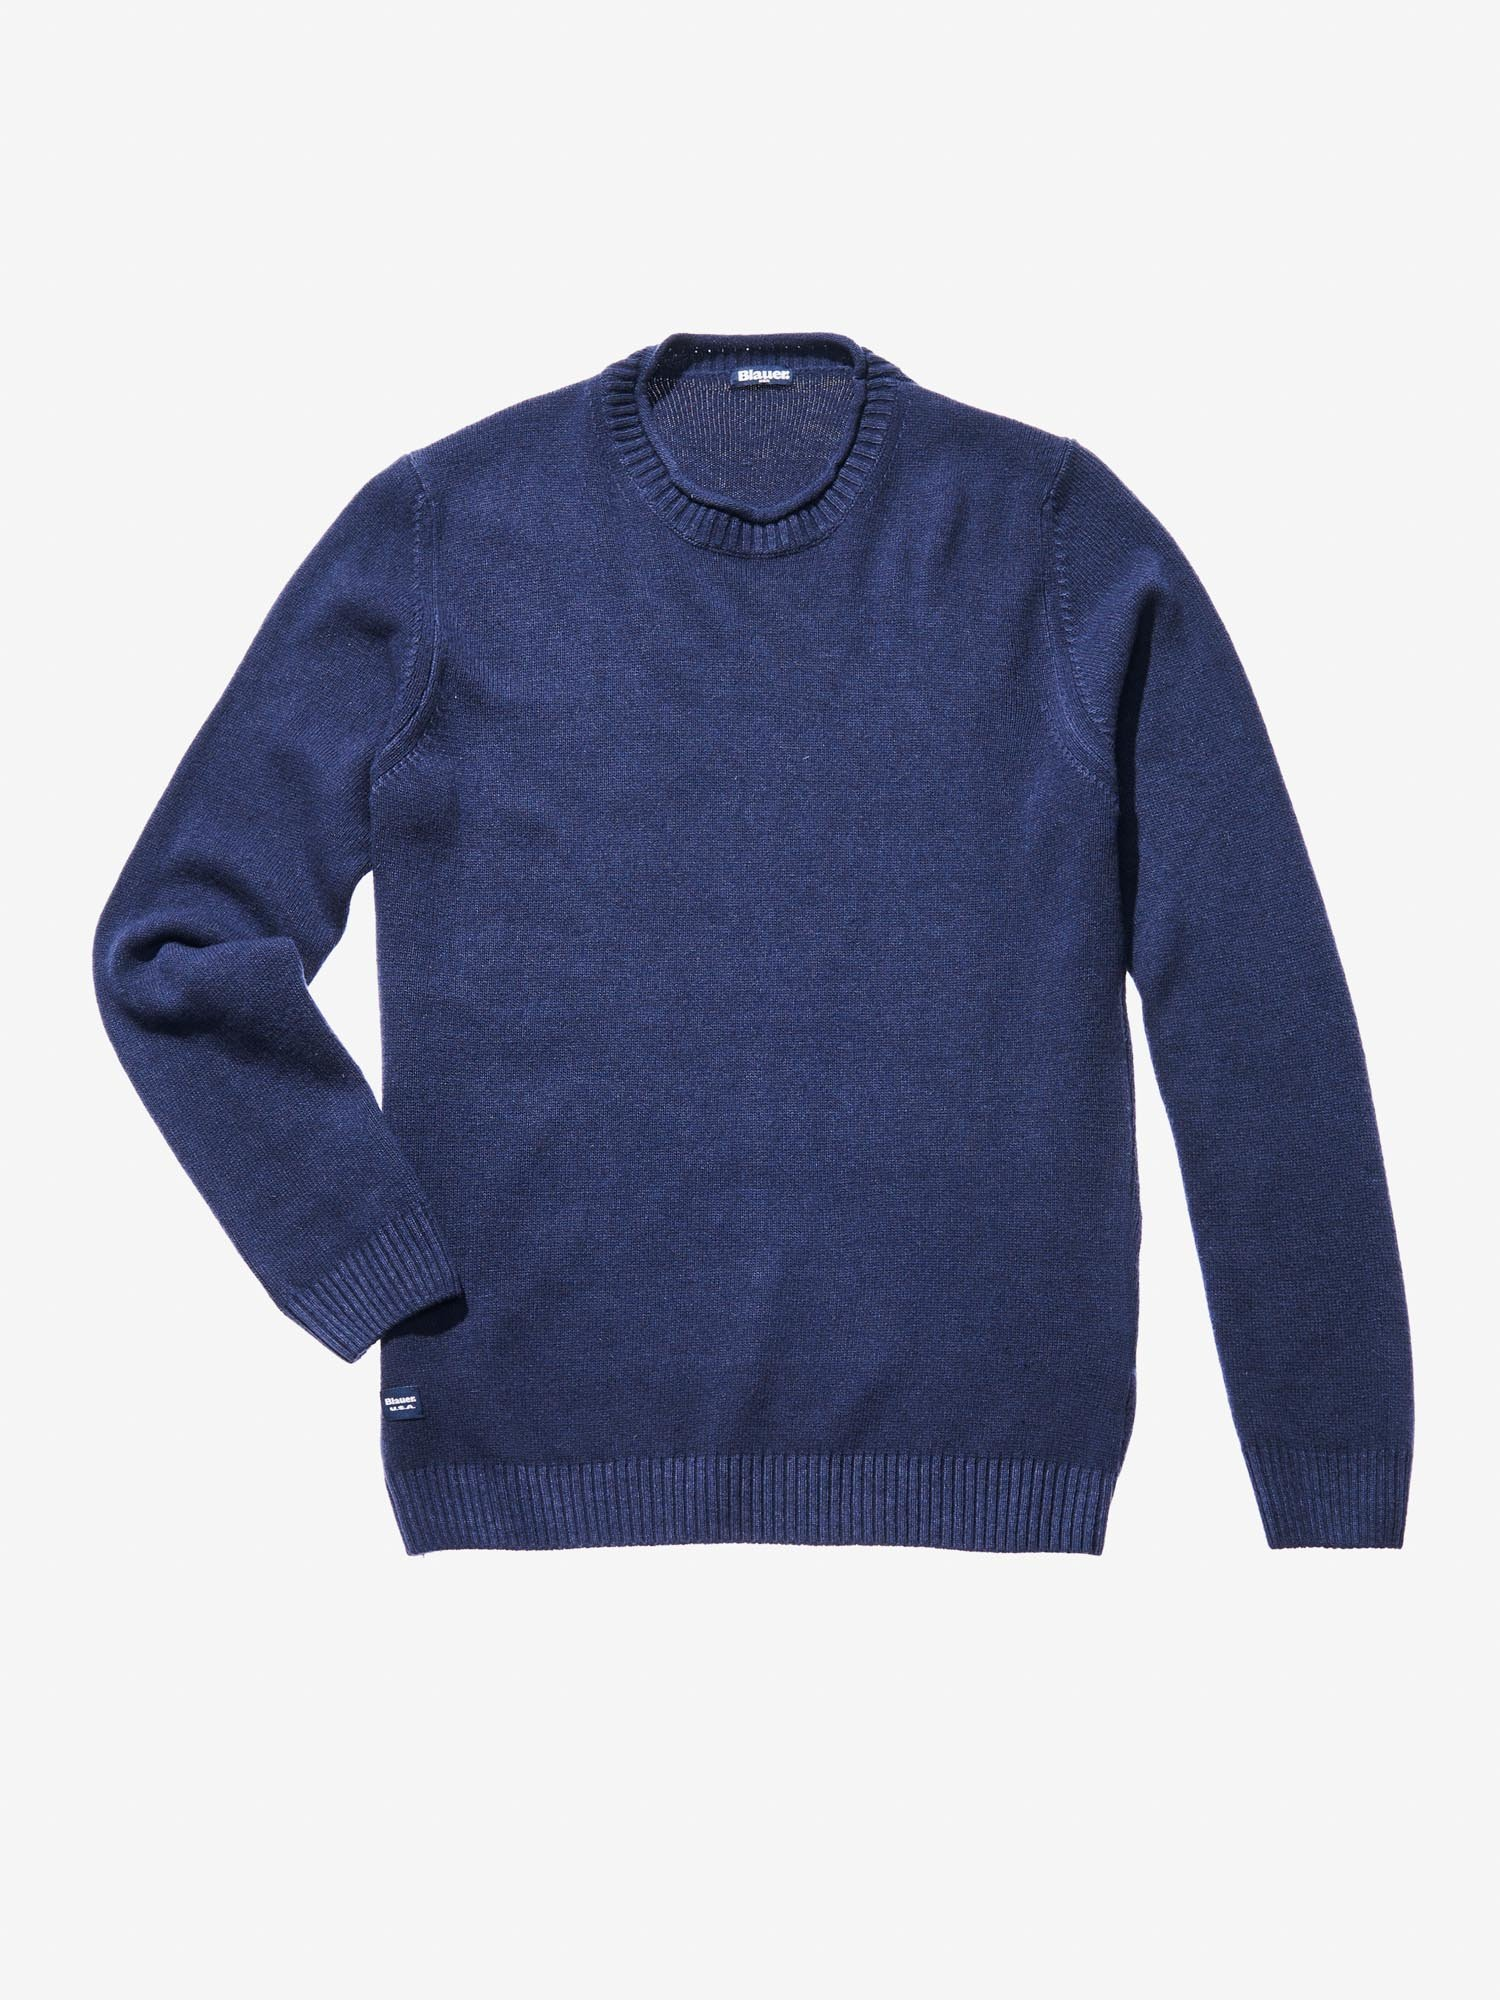 CREW NECK GARMENT DYED WOOL-BLEND SWEATER - Blauer